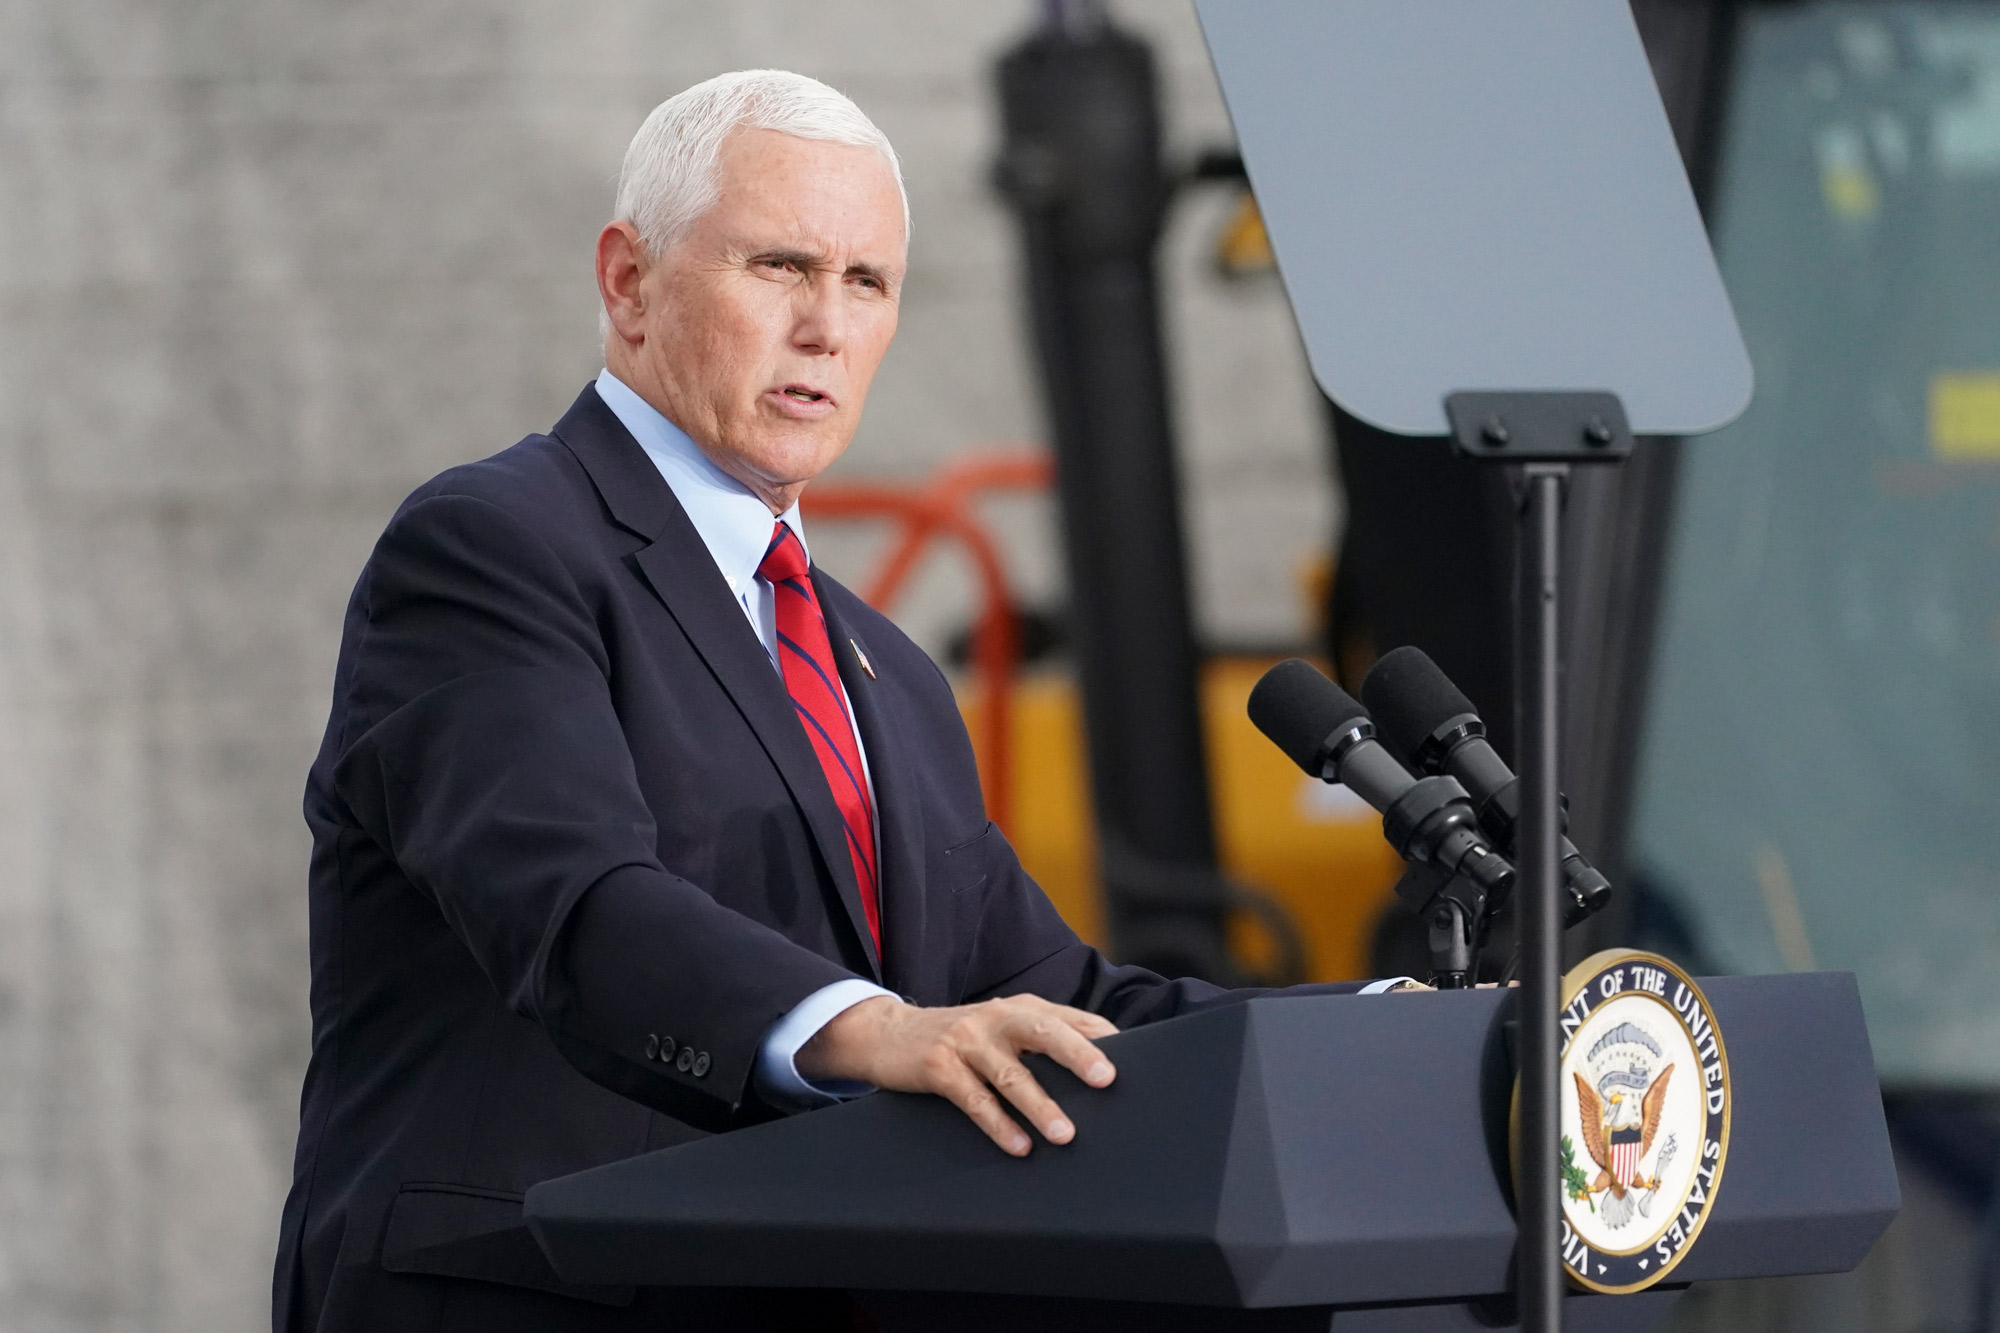 Vice President Mike Pence speaks at a campaign event on September 1 in Exeter, Pennsylvania.